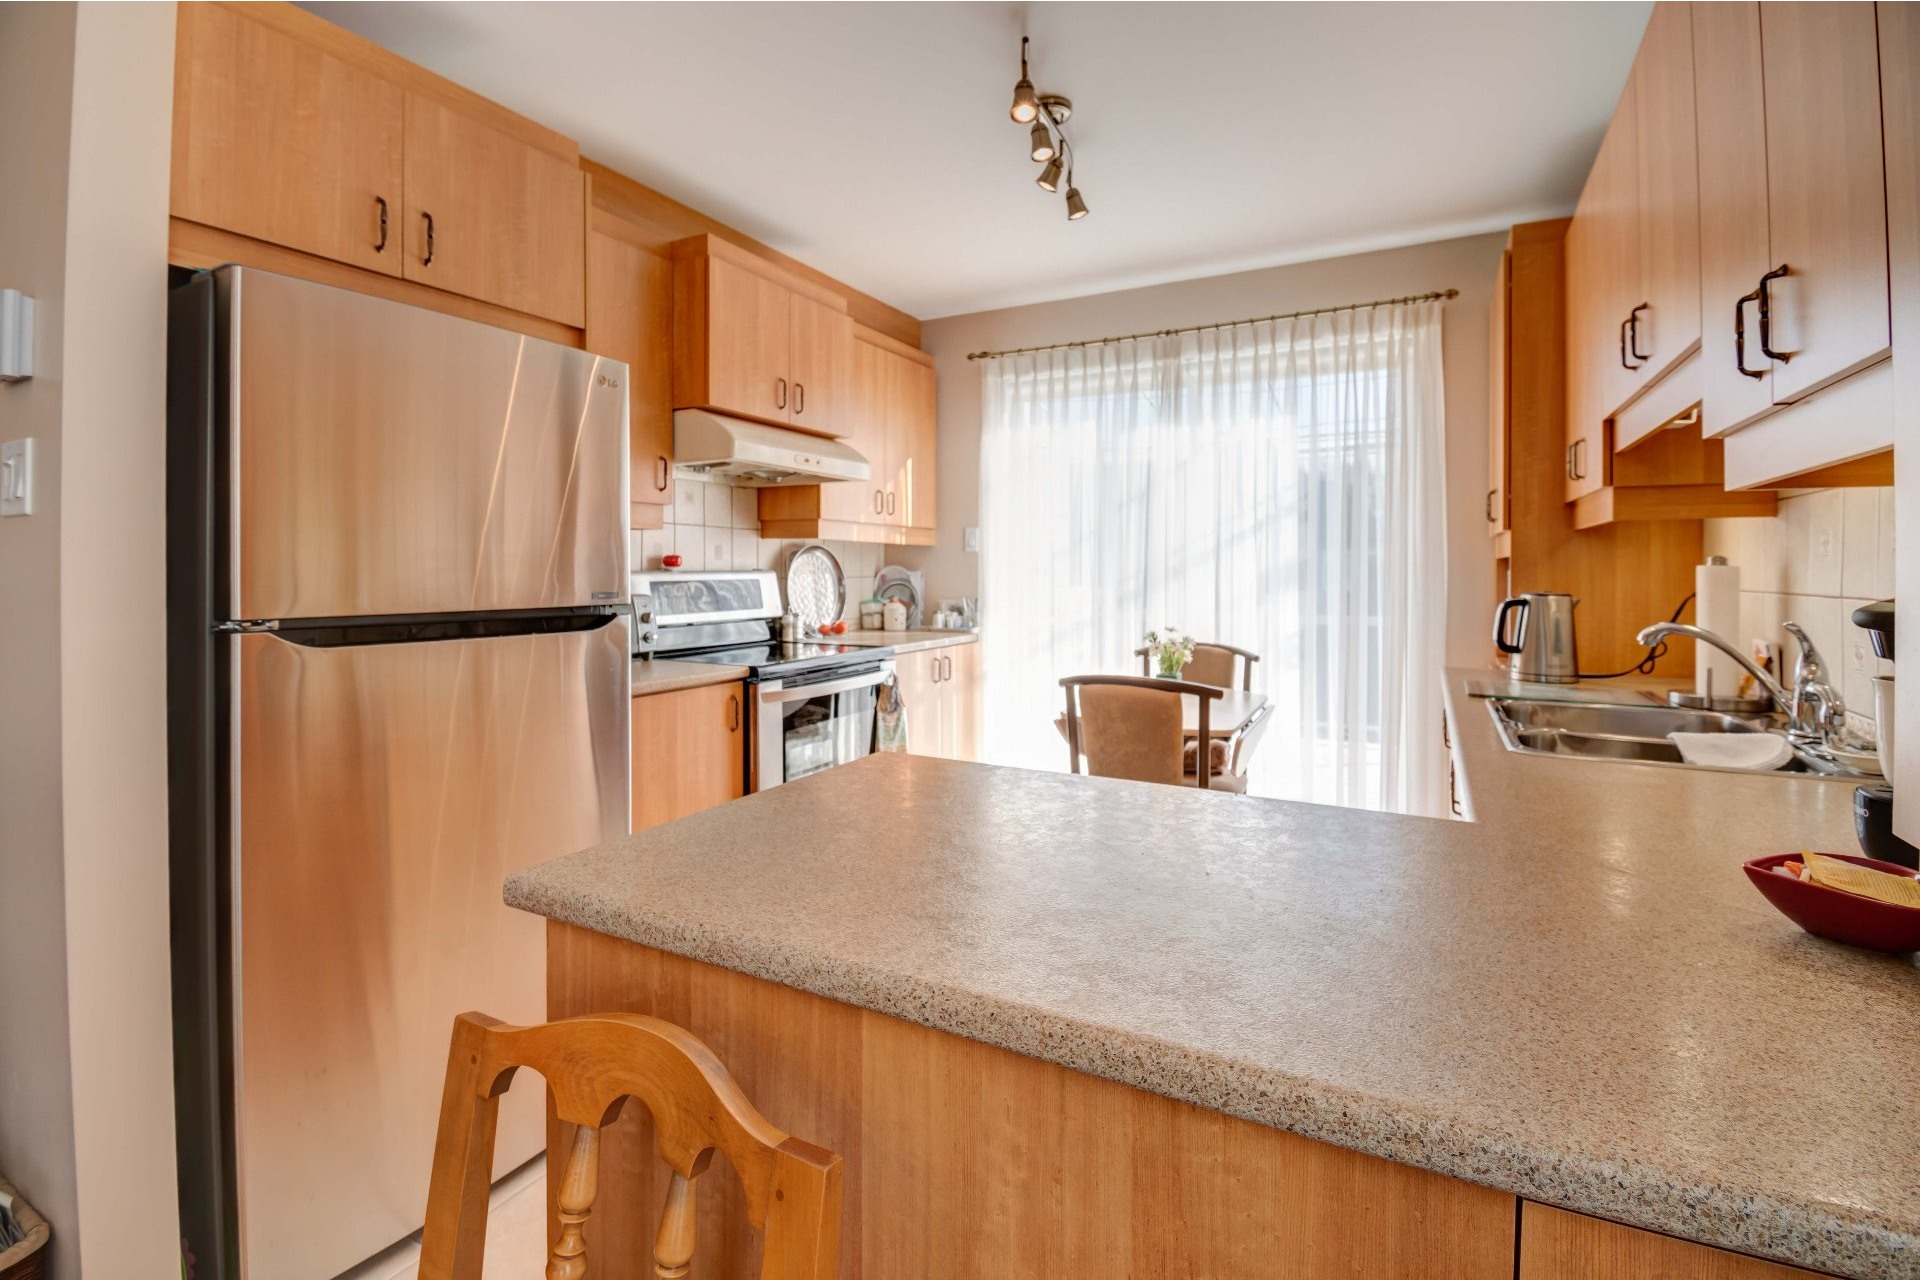 House For sale Trois-Rivières - 13 rooms